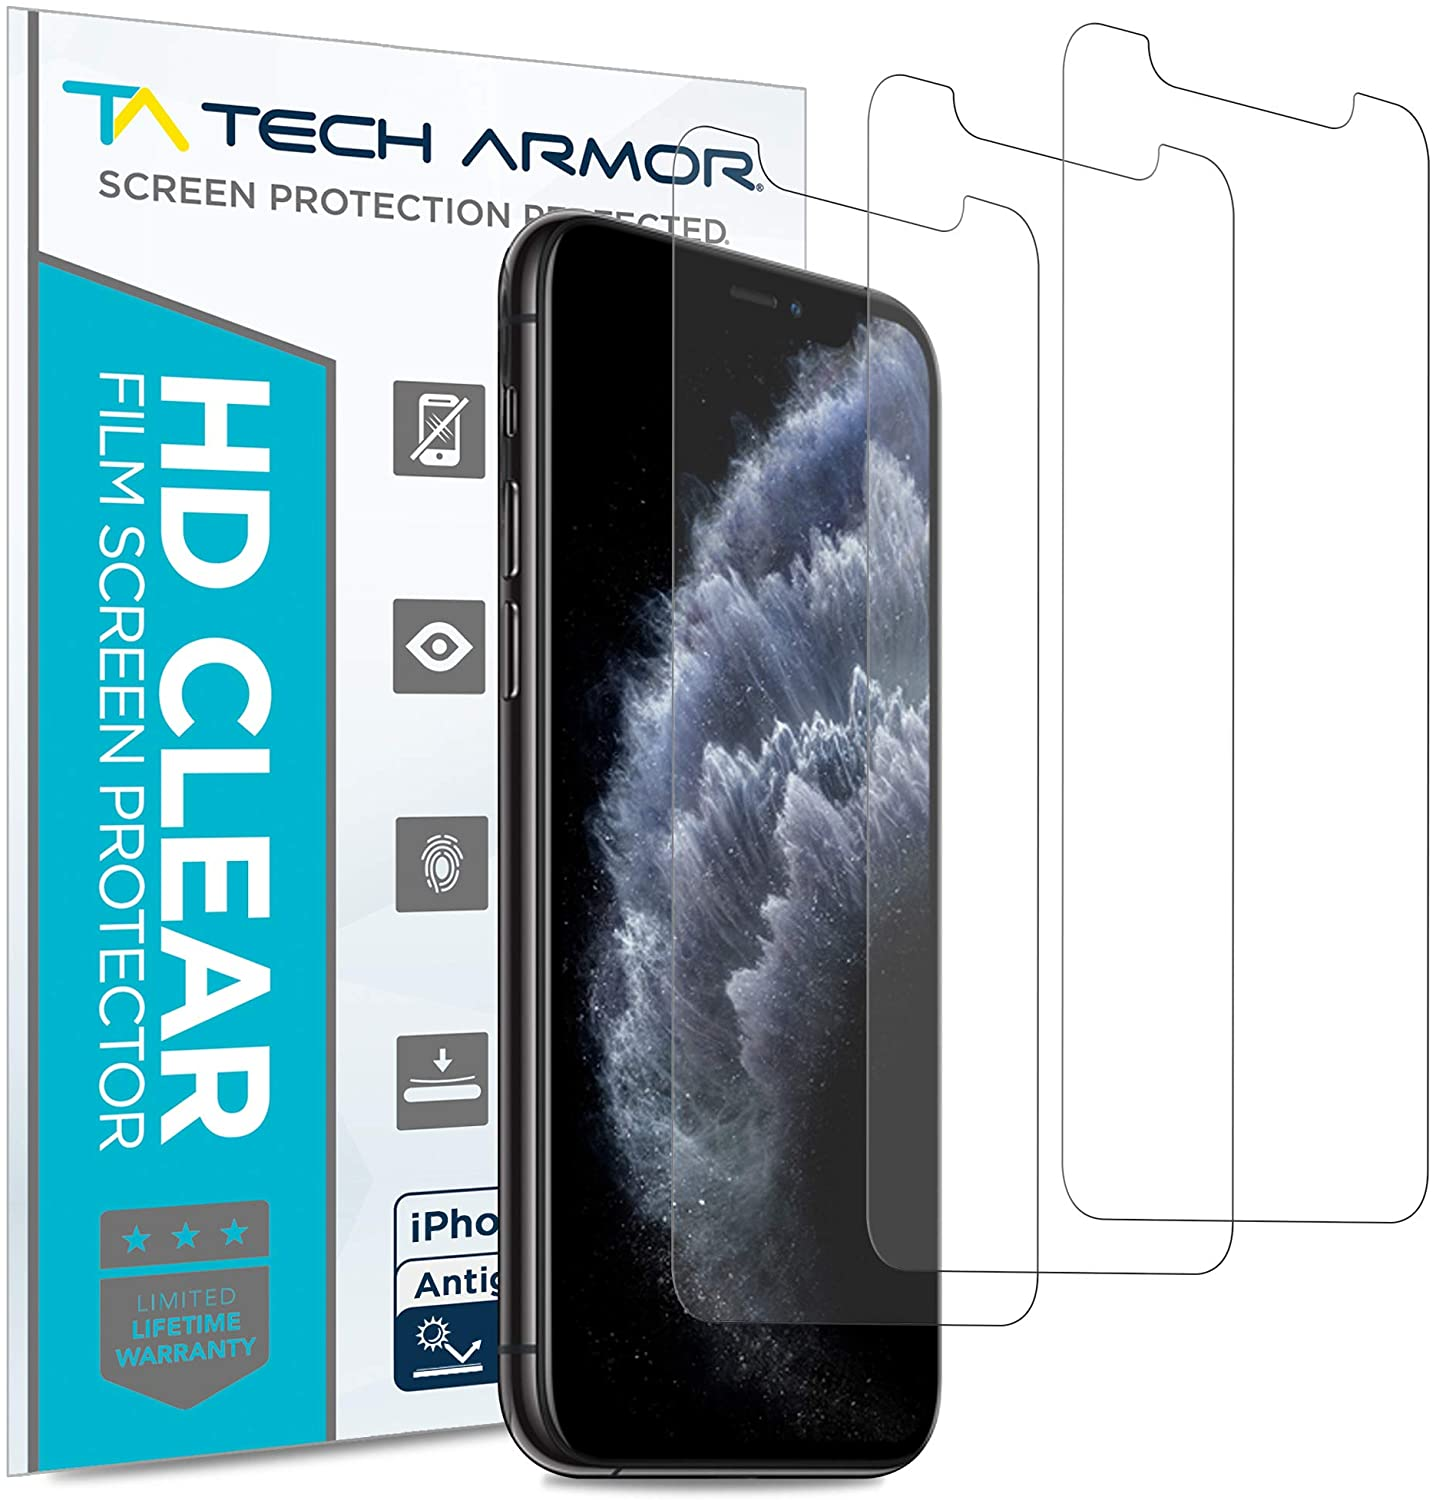 Tech Armor Matte Anti-Glare/Anti-Fingerprint Film Screen Protector for New Apple iPhone 11 Pro Max/iPhone Xs Max - Case-Friendly, 3D Touch Accurate Designed for 2019 Apple iPhone 11 Pro Max [3-Pack]